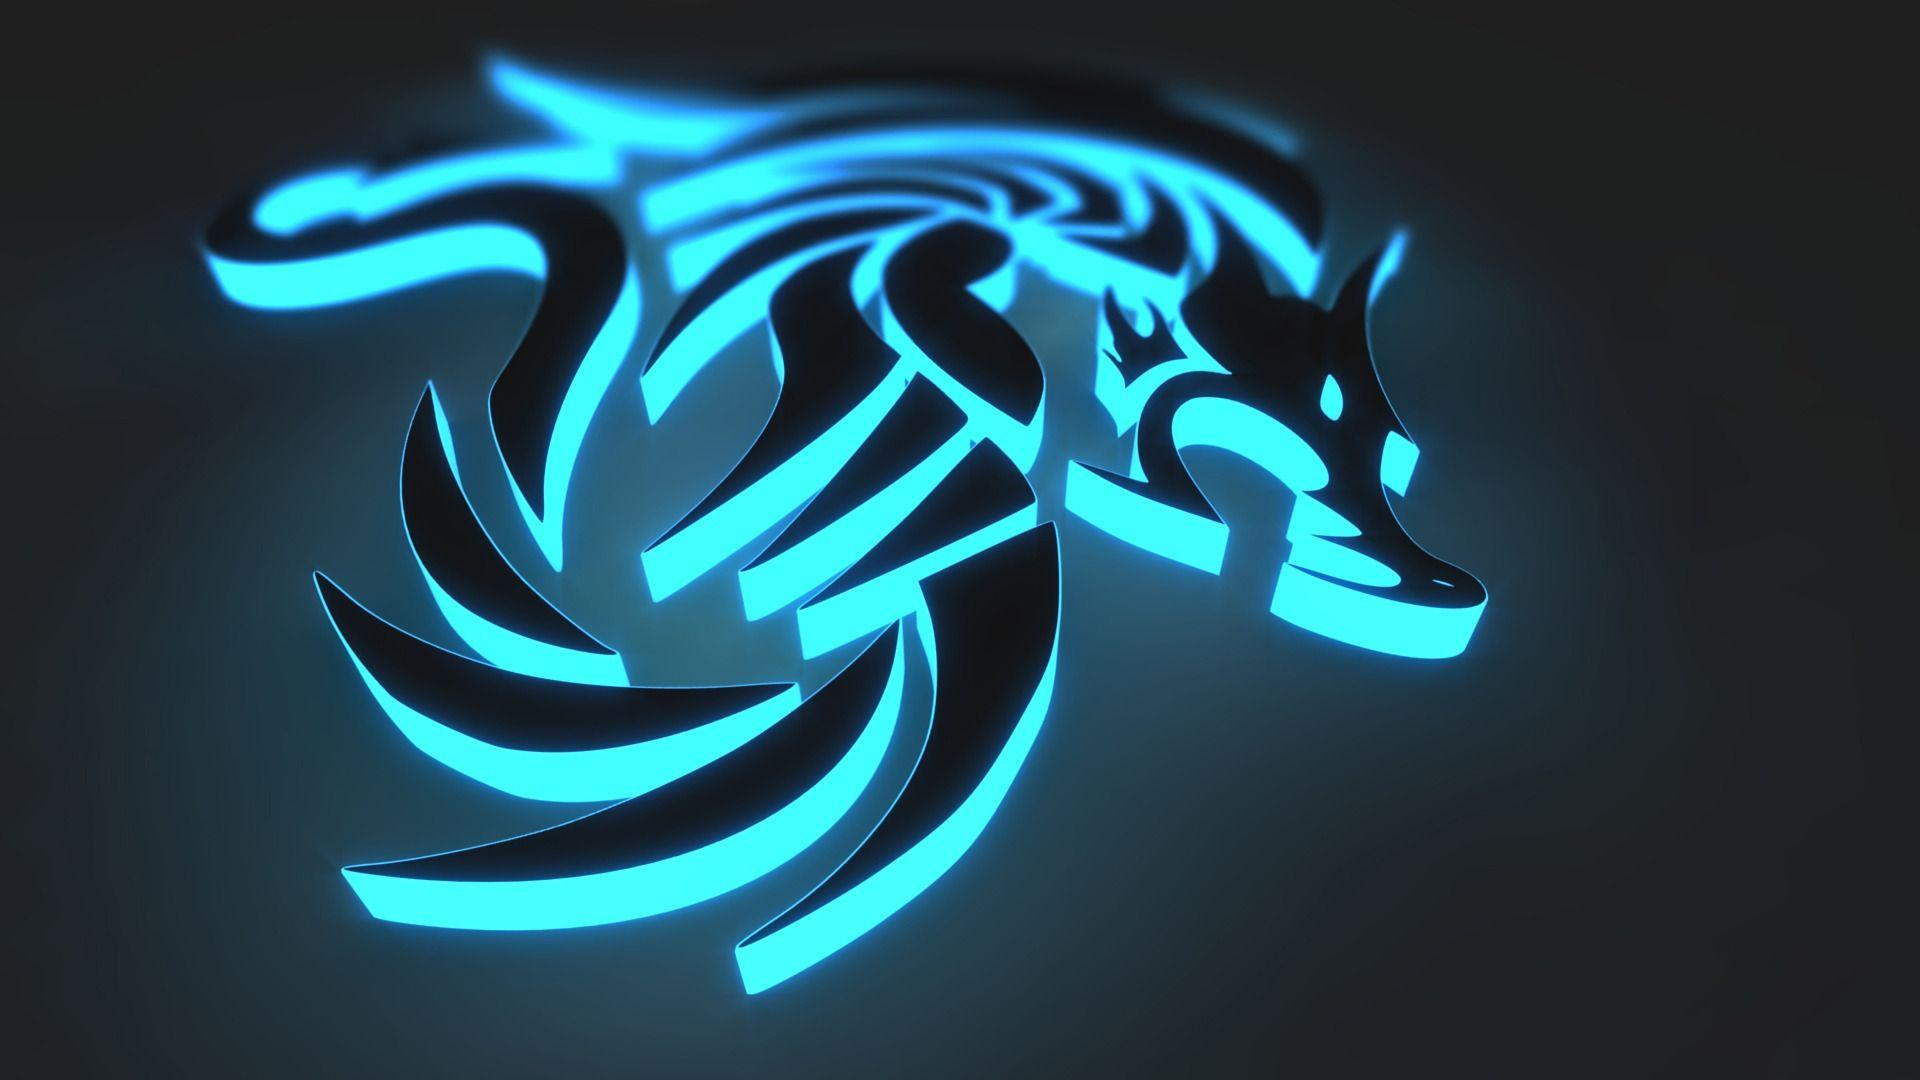 Wallpapers For > Dragon Wallpapers 3d